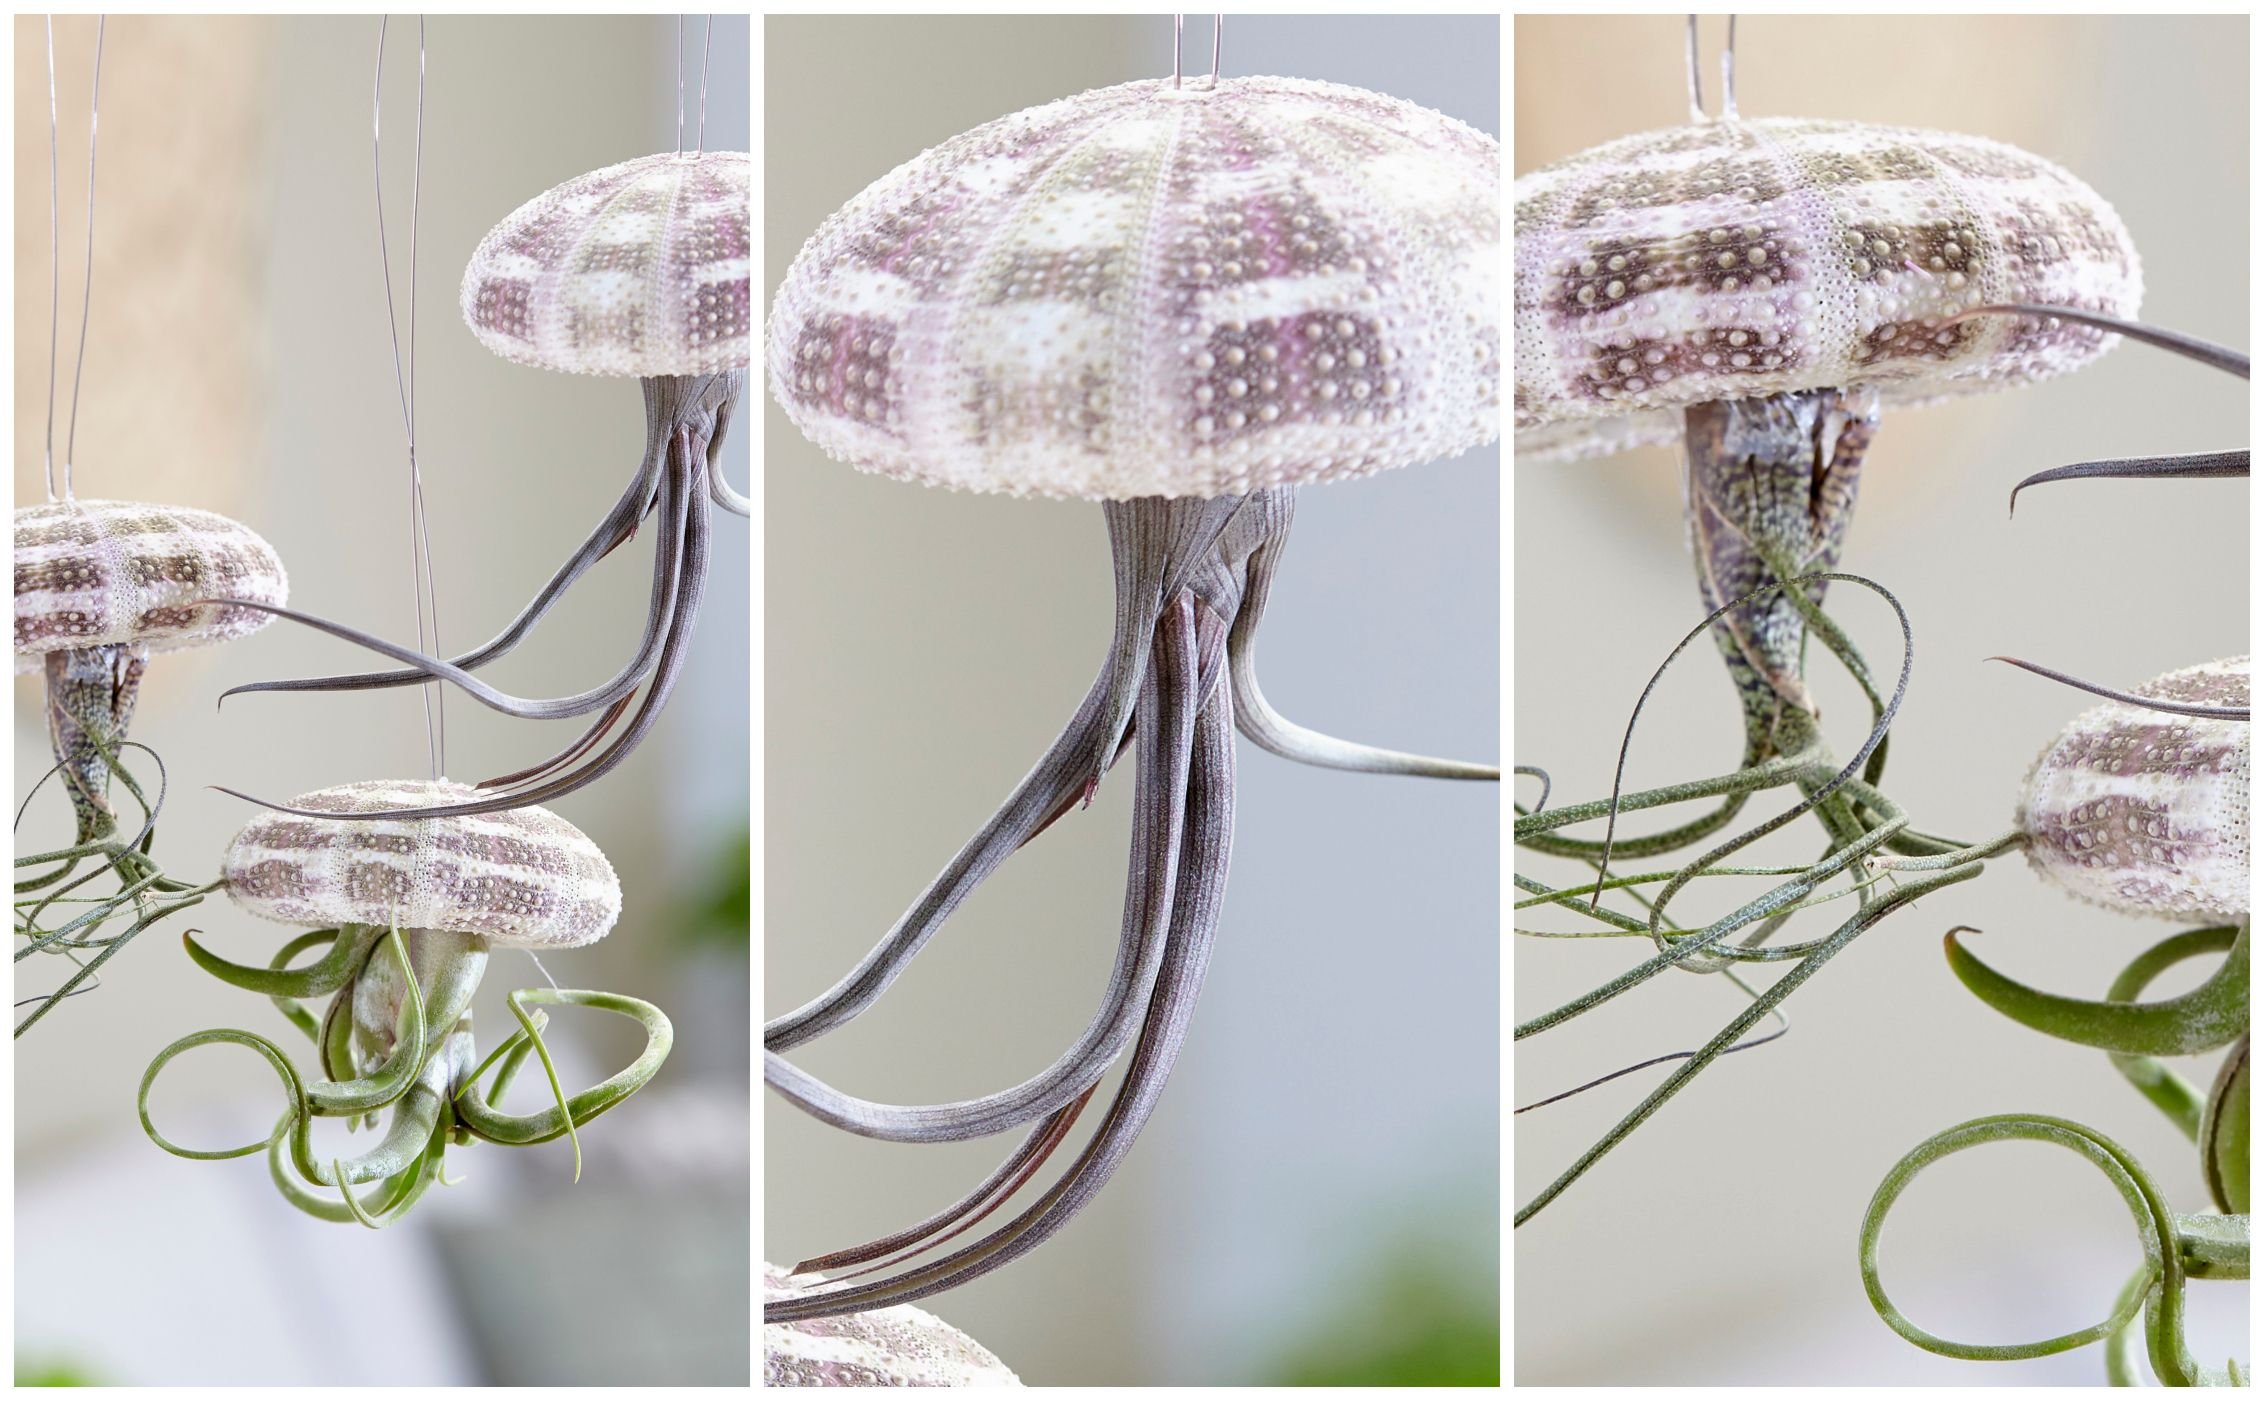 The hanging jellyfish air plant is the must-have houseplant of the moment